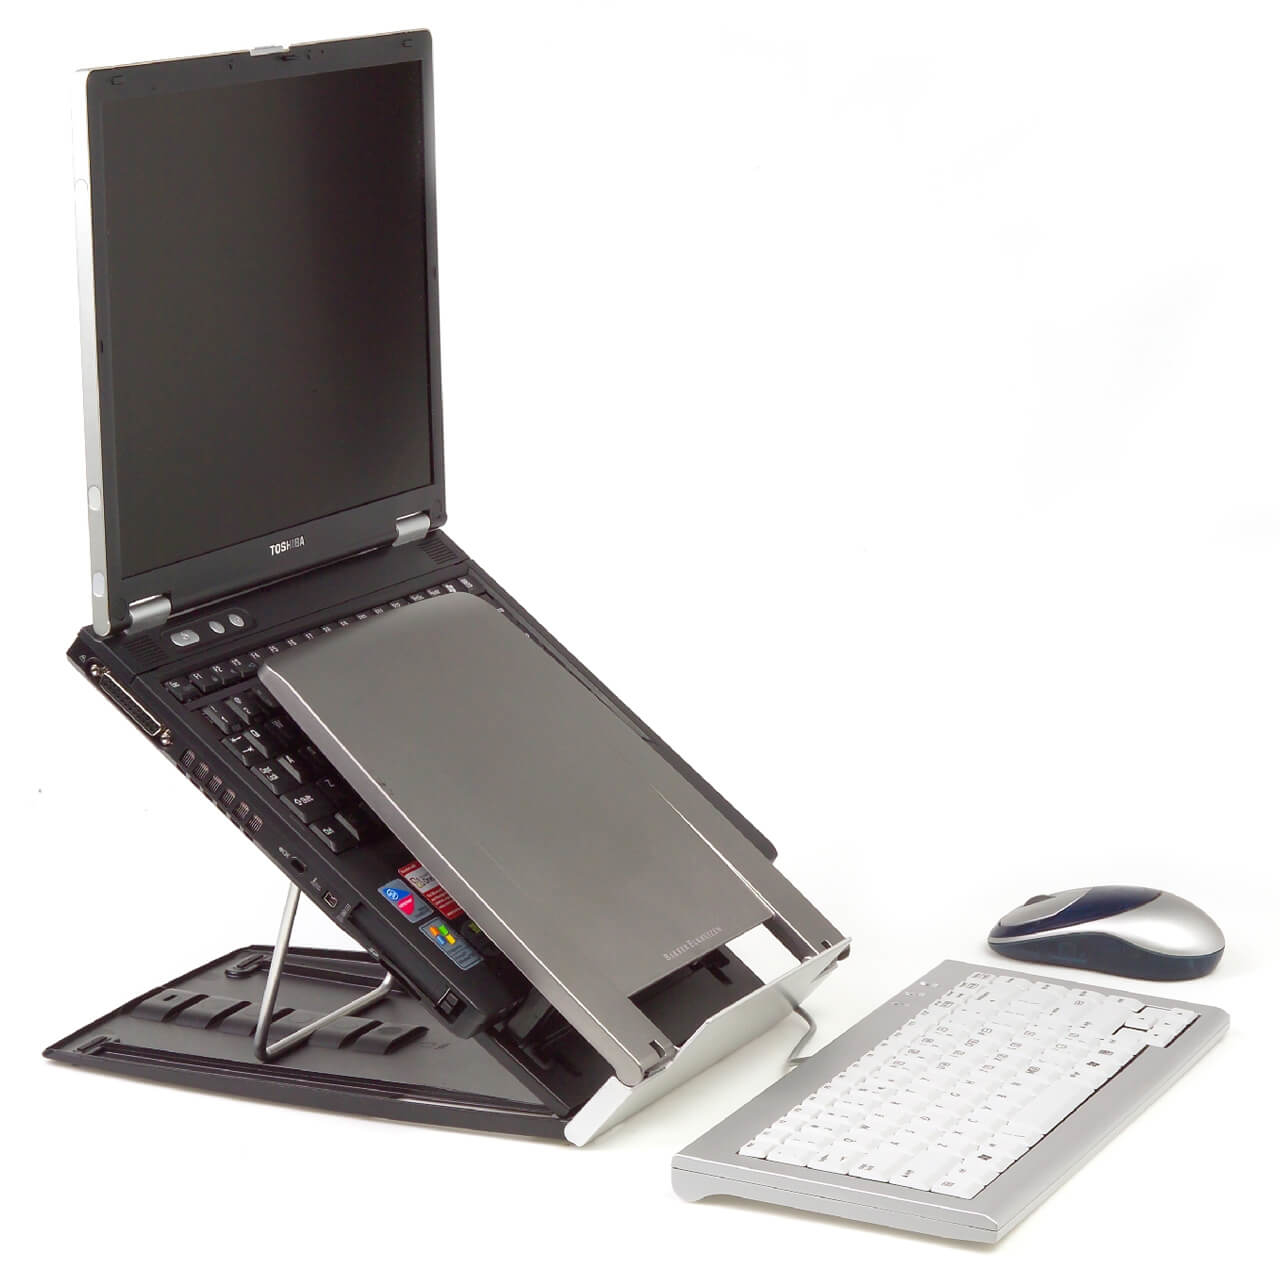 Ergo-Q 330 laptophouder inc. Documenthouder